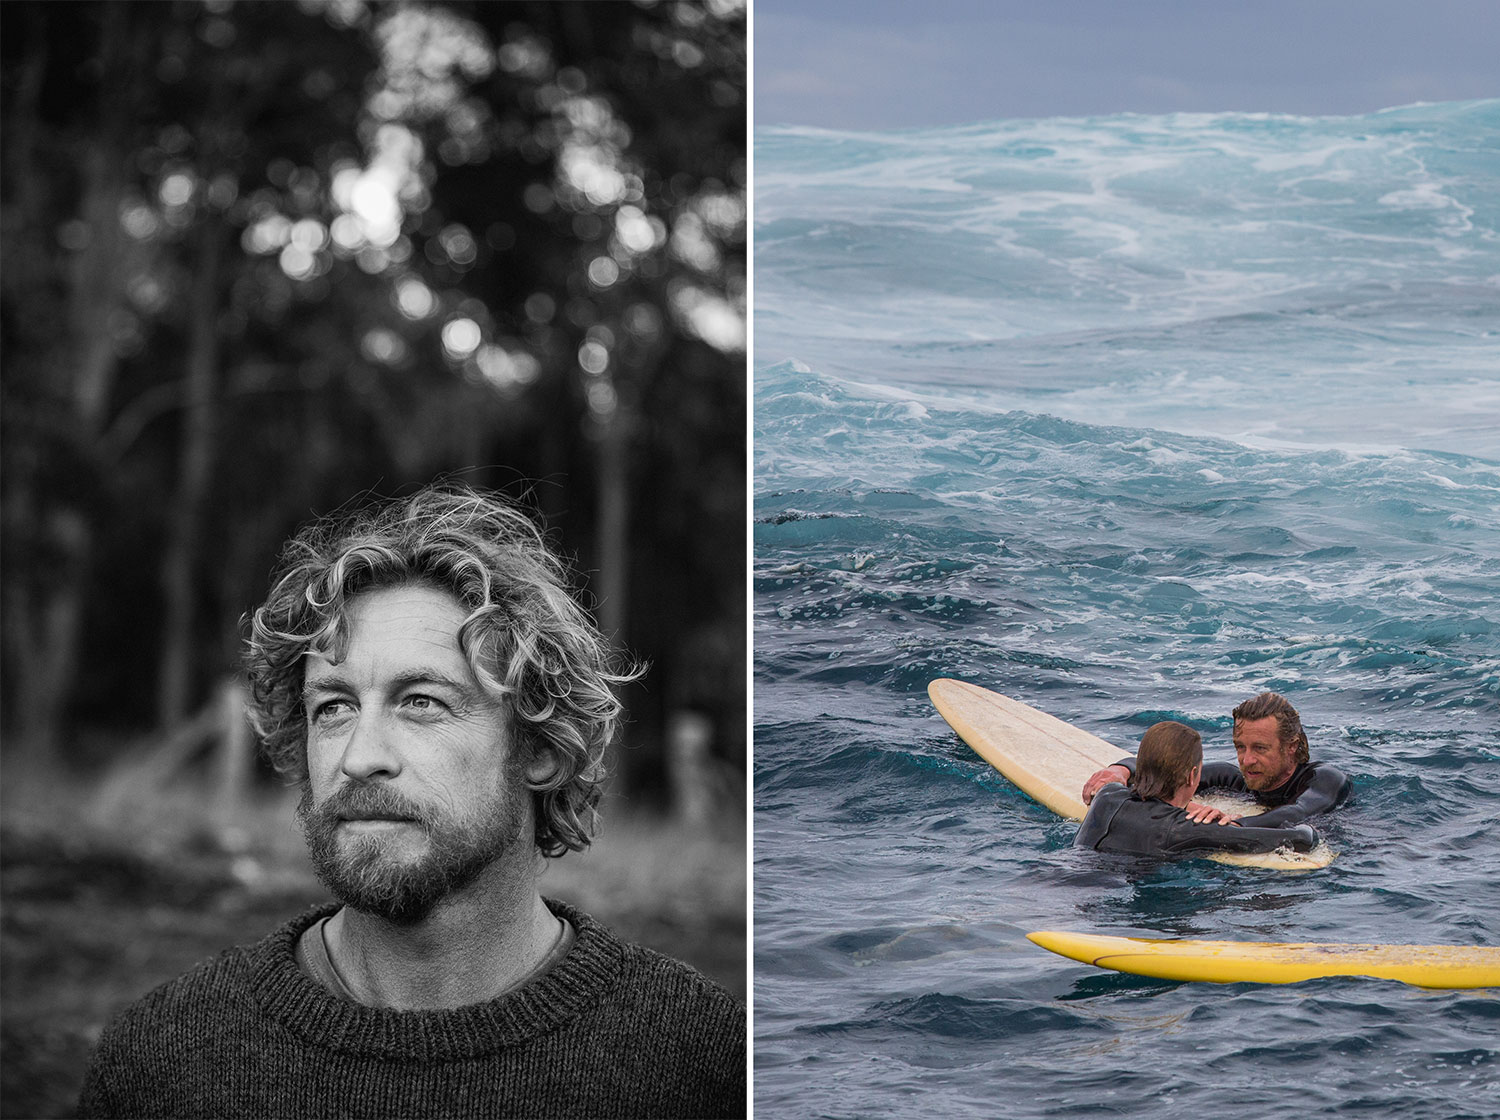 Simon Baker and Samson Coulter, Sando and Pikelet, in one of the surf scenes in Breath the movie